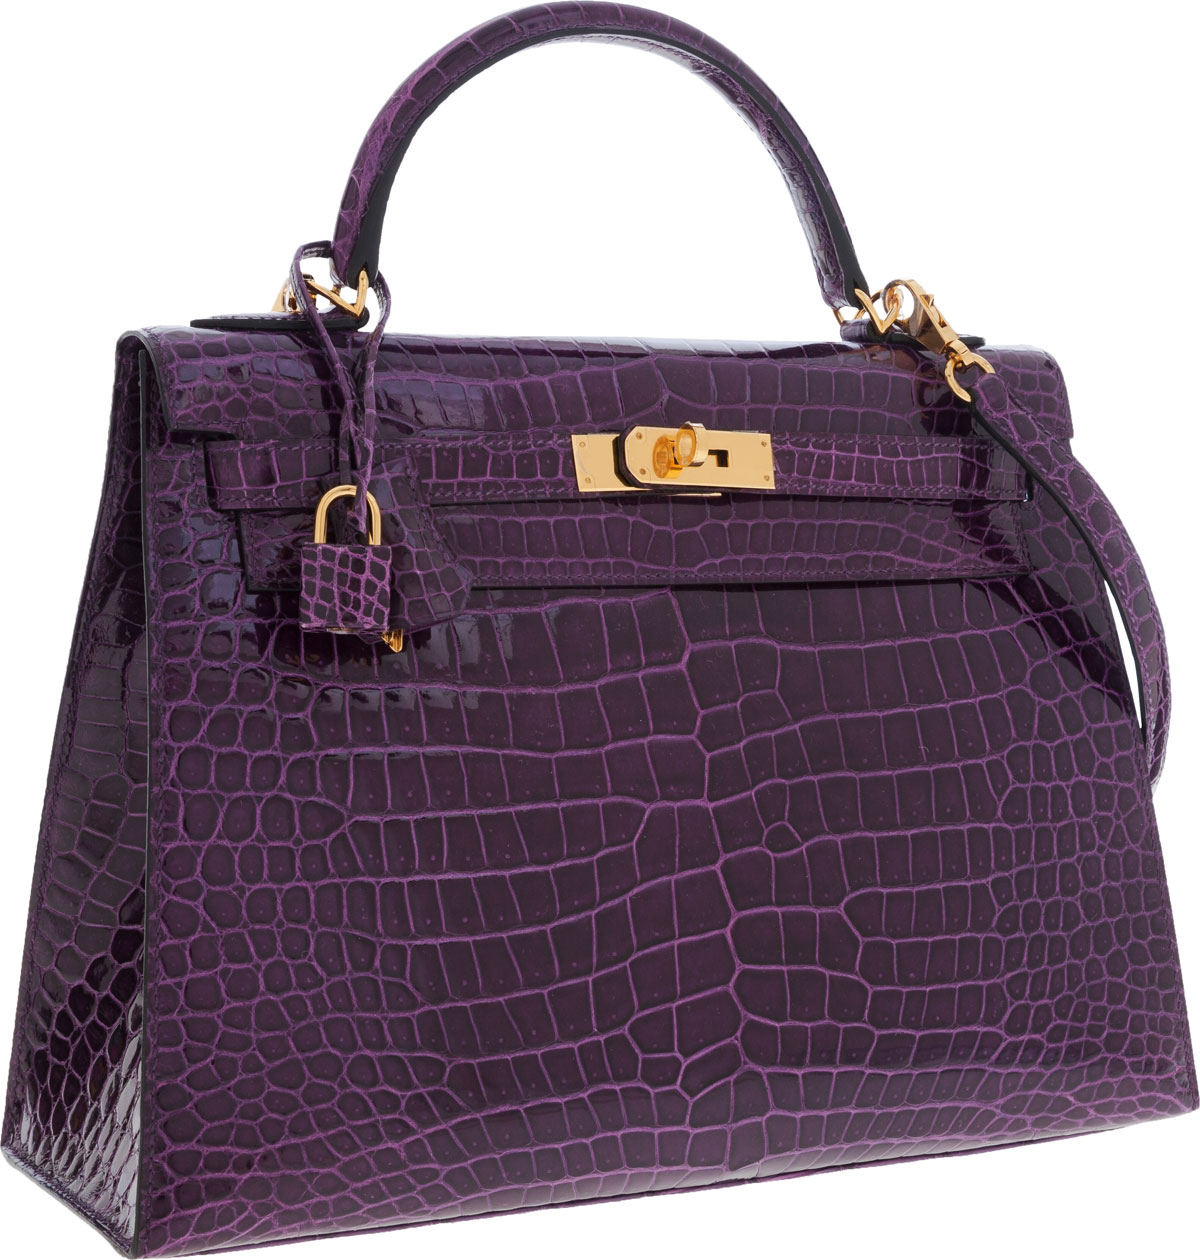 Hermes Bag and Accessories Price List Reference Guide ...